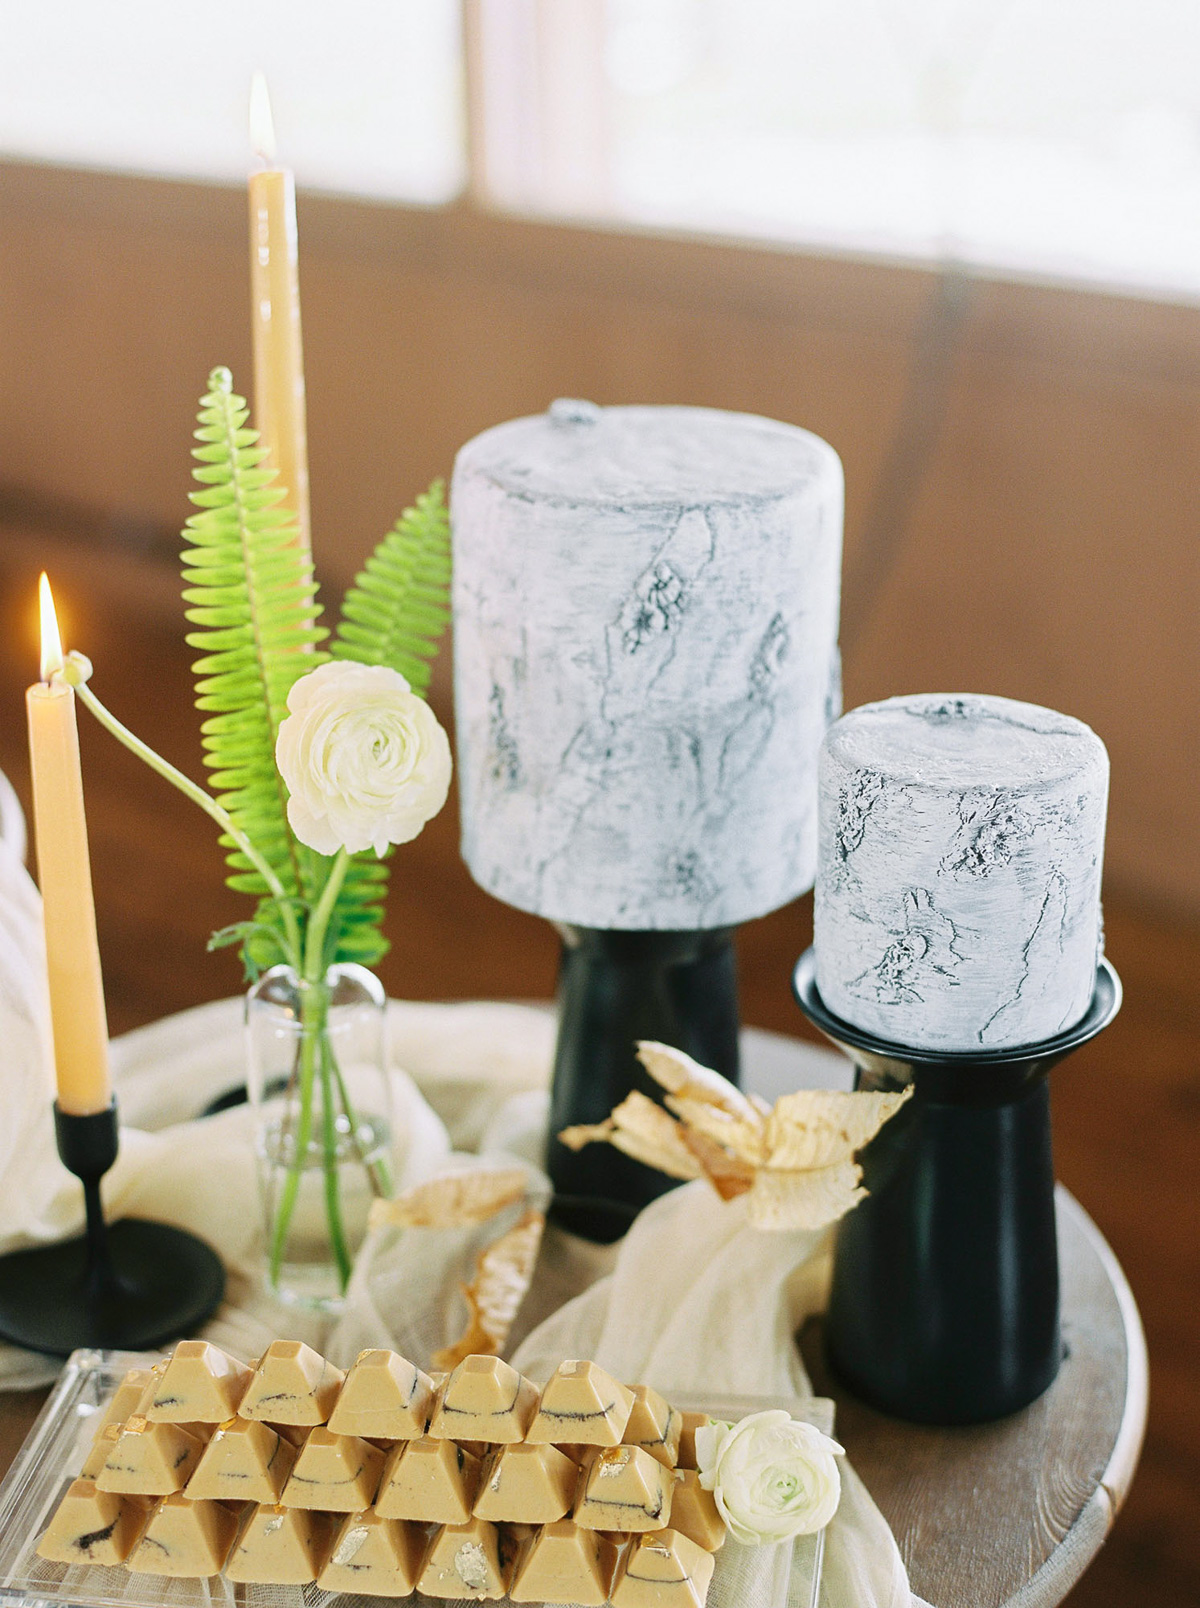 will-reid-photo-vineyard-bride-swish-list-kurtz-orchards-market-niagara-on-the-lake-wedding-editorial-42.jpg